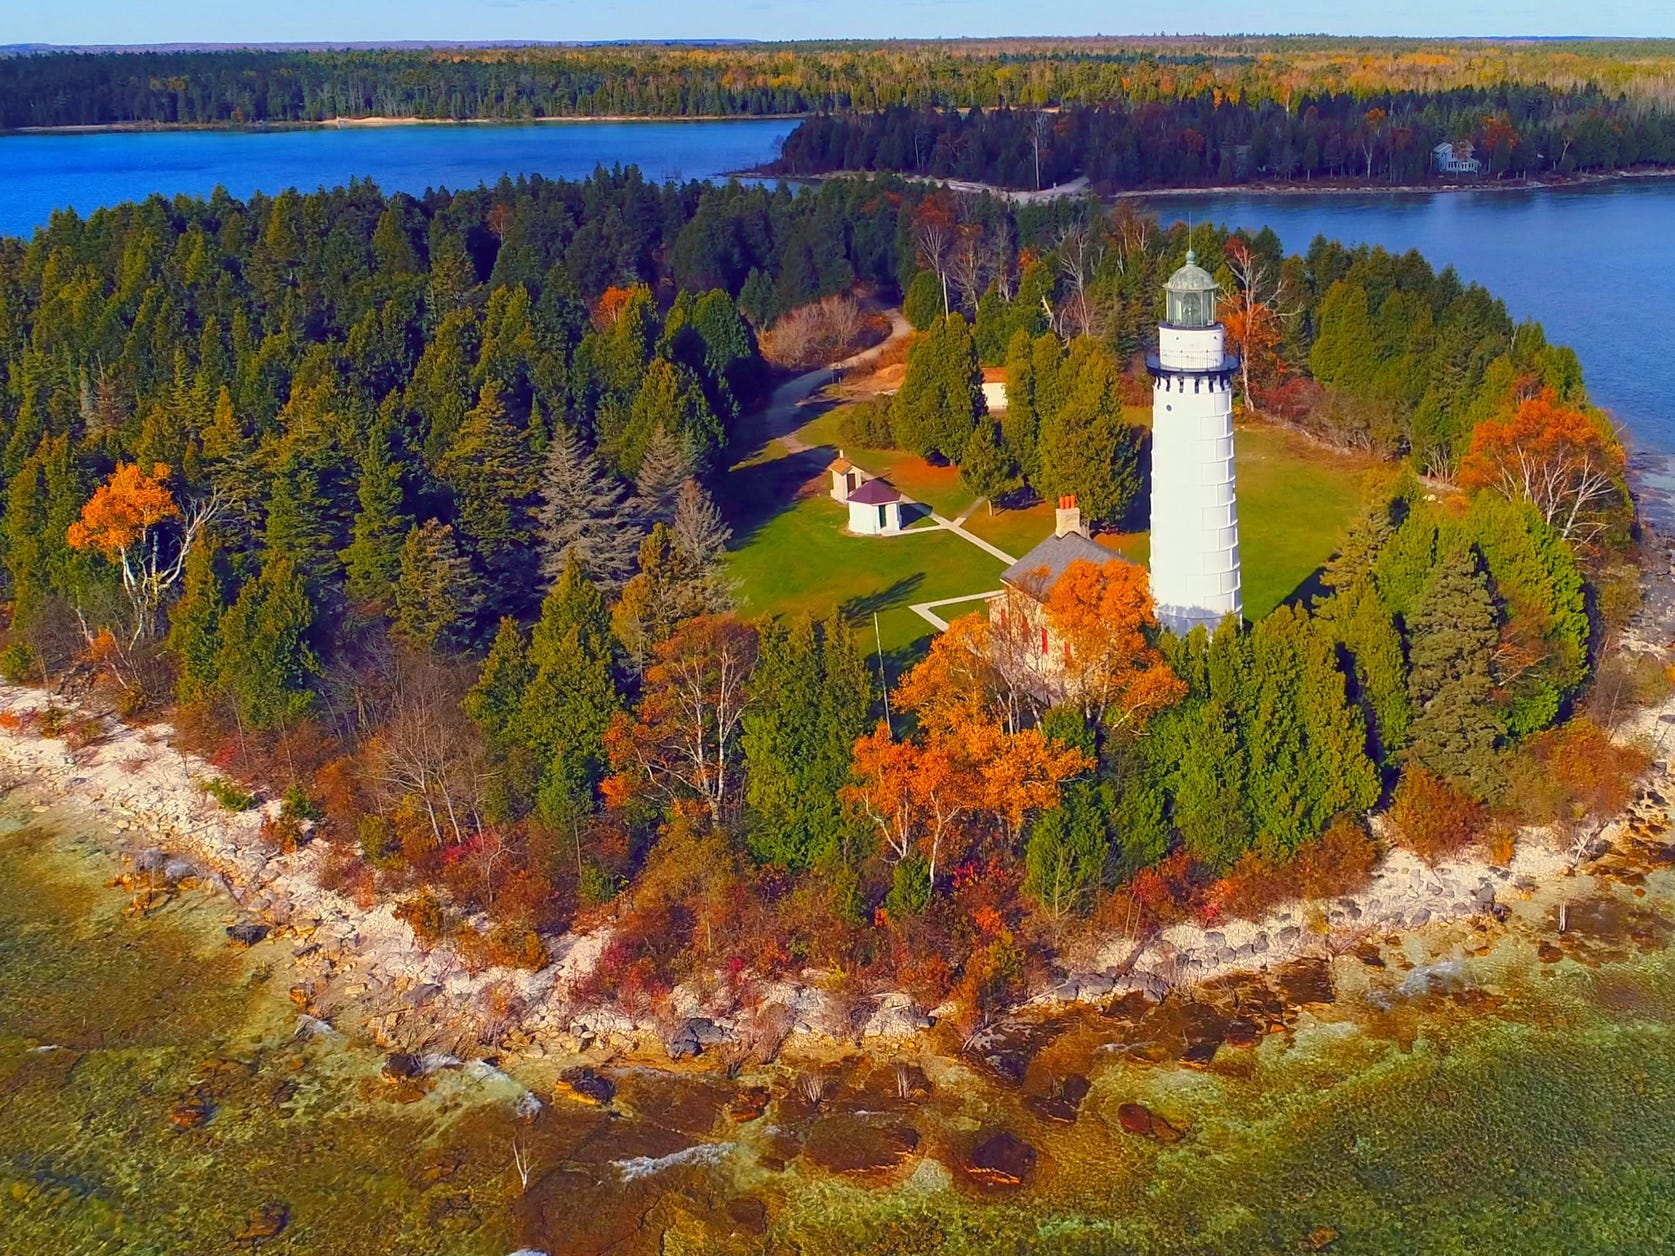 Slide 11 of 17: Door County is said to be one of the best fall foliage spots in the Midwest.You can drive down highways 57 or 42 to see all of it, with lighthouses and European-styled buildings along the way.There are also really cute towns and orchards to visit throughout the peninsula, where you can stop in for events, local art, and great food.It's best to visit in early October when all the leaves have changed but before it's too cold.